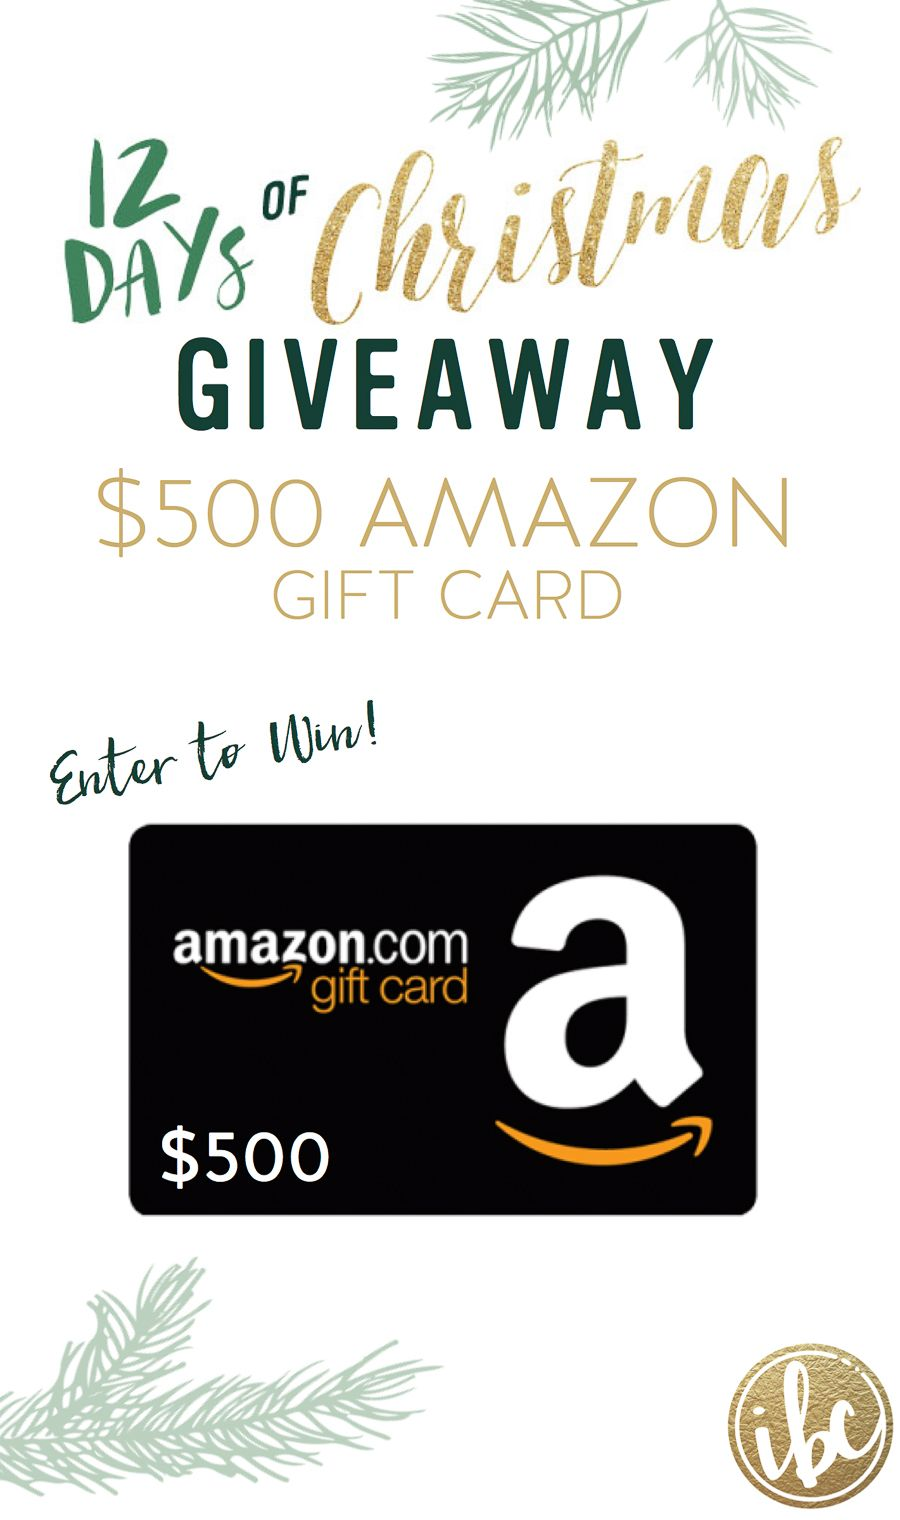 Enter To Win 500 Amazon Gift Card Via Inspired By Charm 12 Days